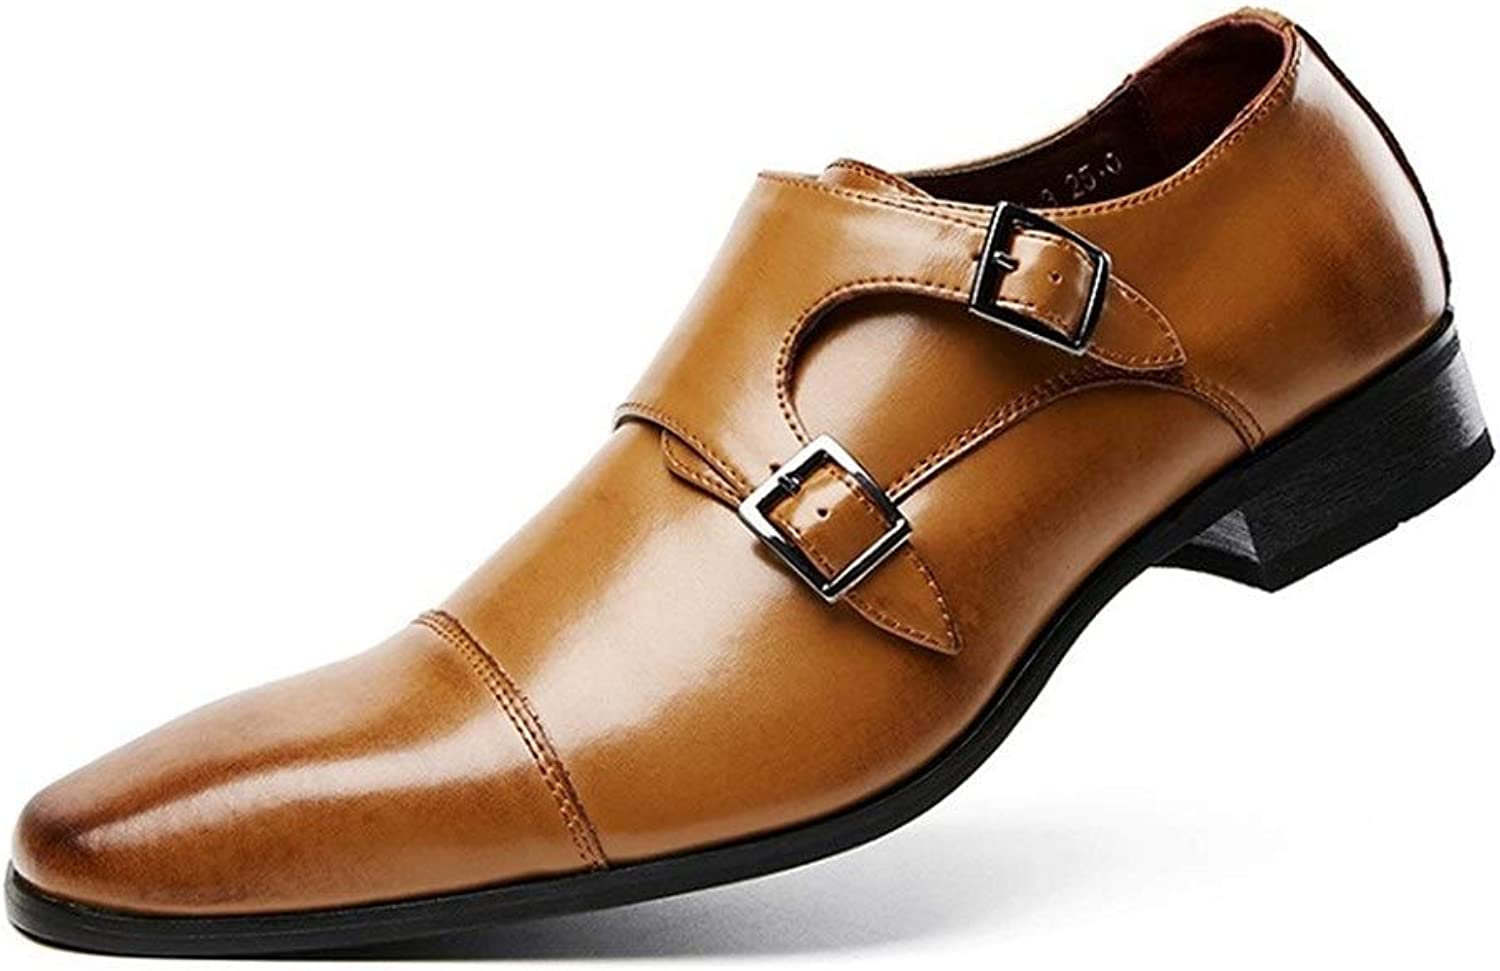 Ino Oxfords for Men Dress shoes Formal Leather shoes Trinity Stick Buckles Monk Straps Captoe